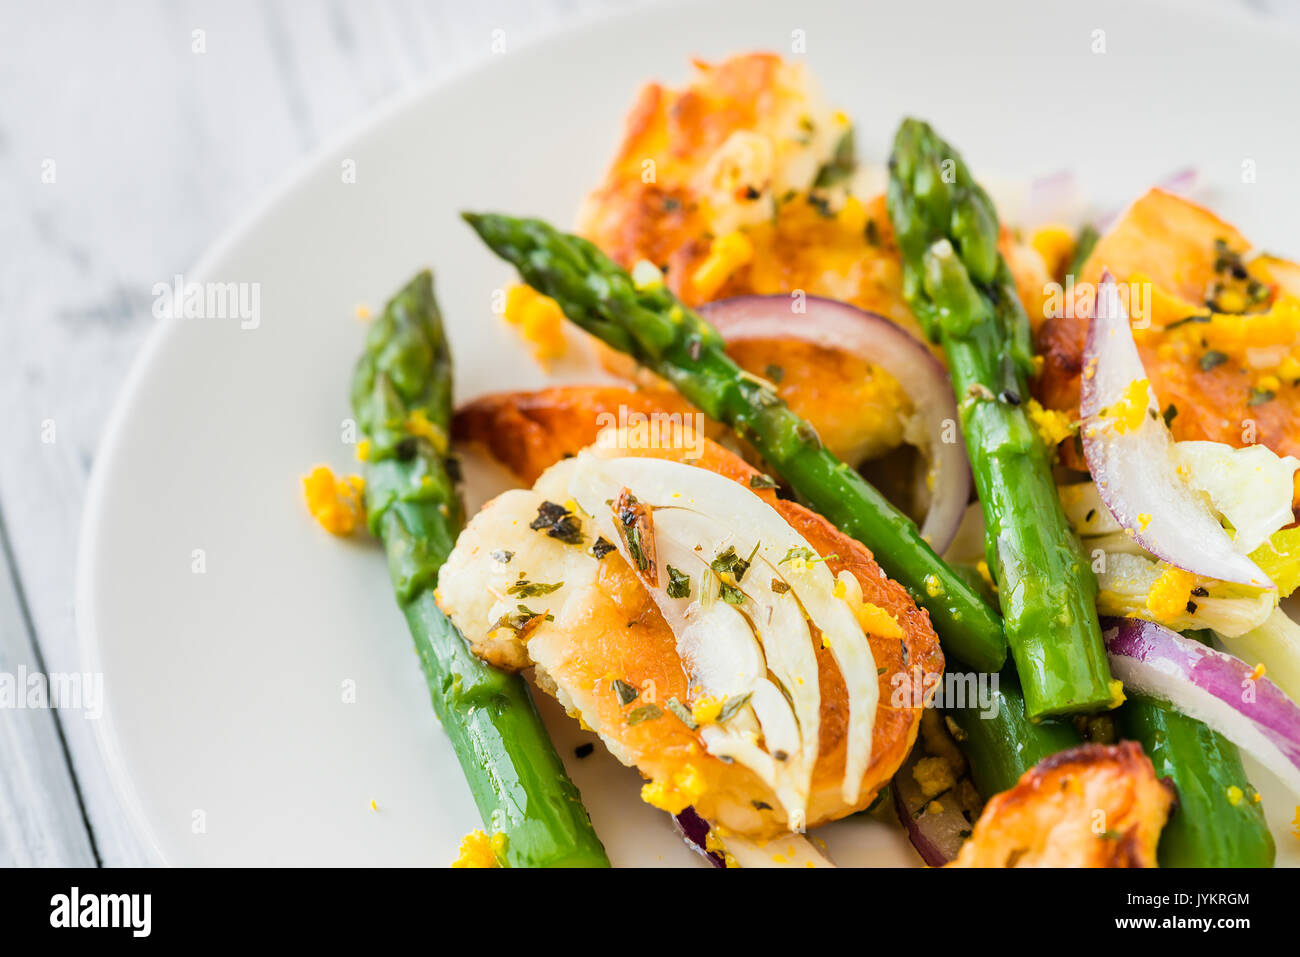 Salad with fried halloumi, asparagus and orange zest. Close up. White wooden background Stock Photo